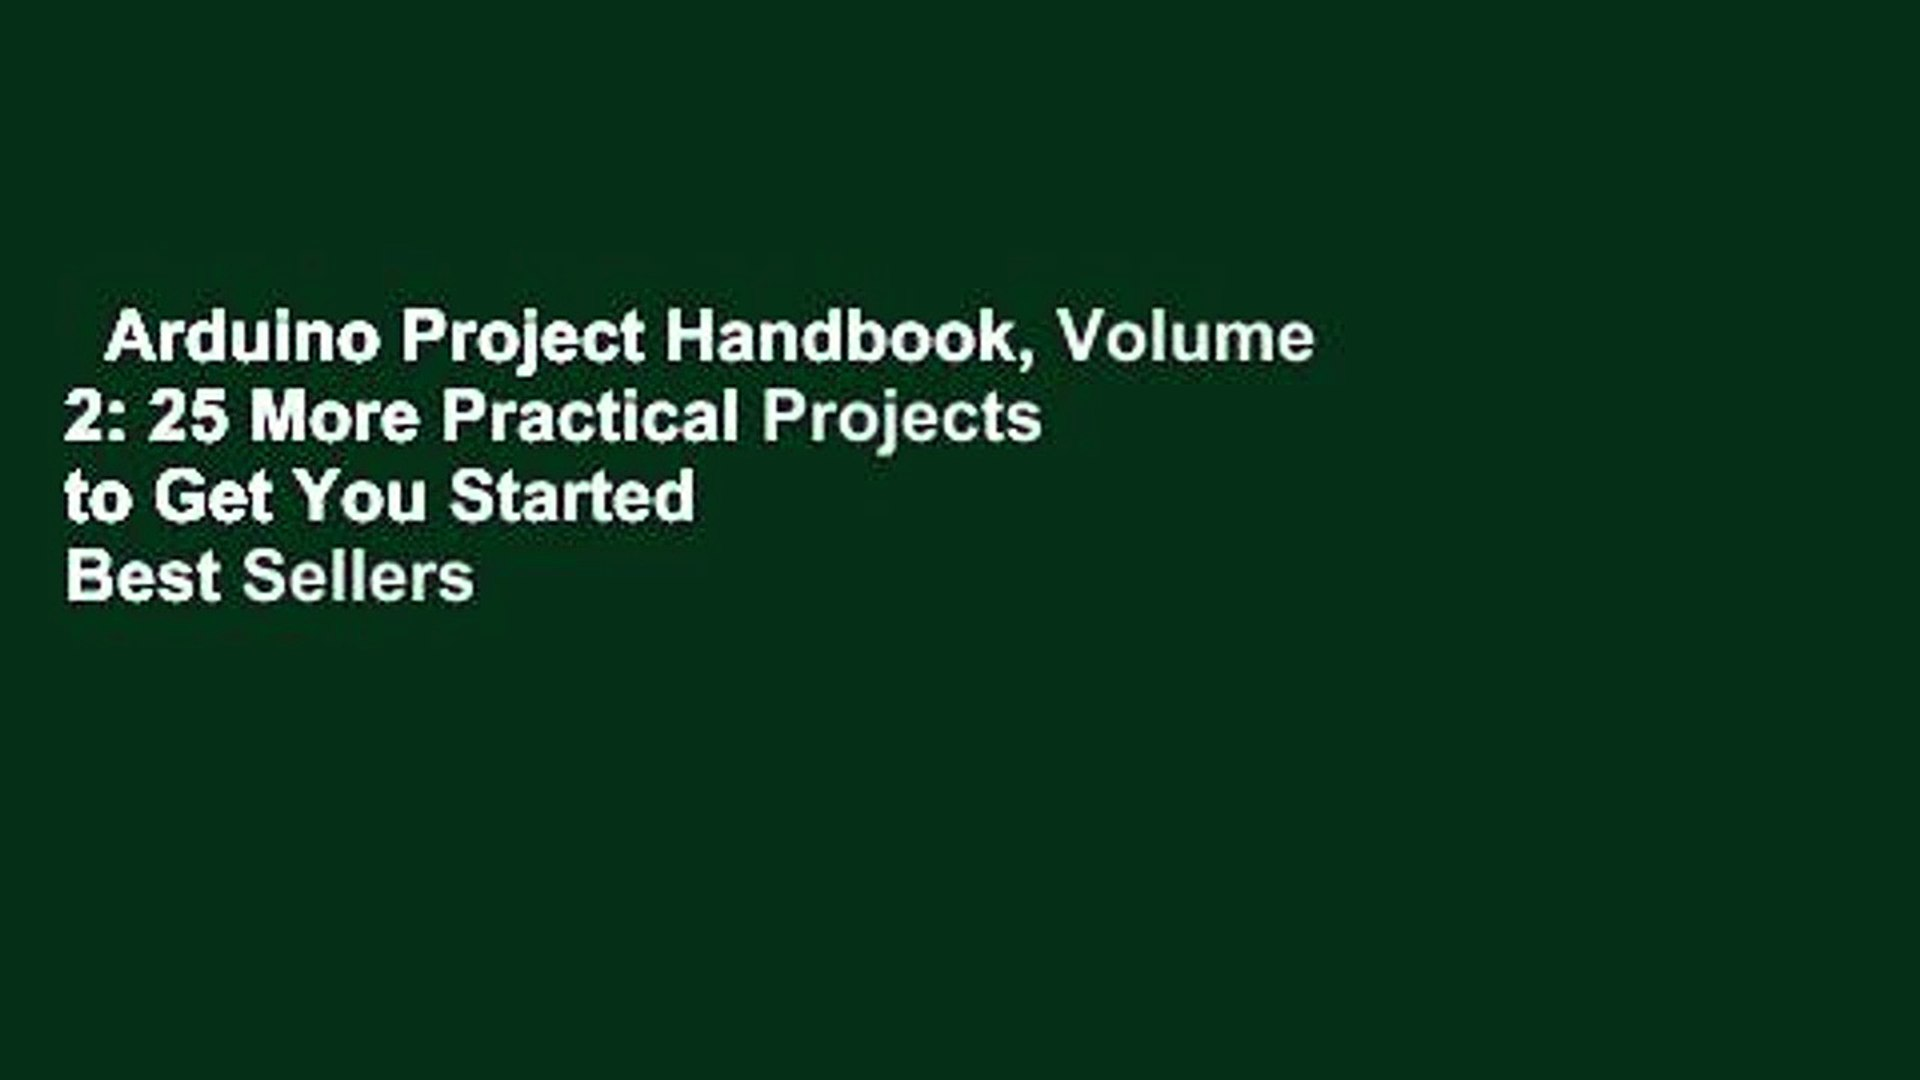 Arduino Project Handbook 25 Practical Projects to Get You Started